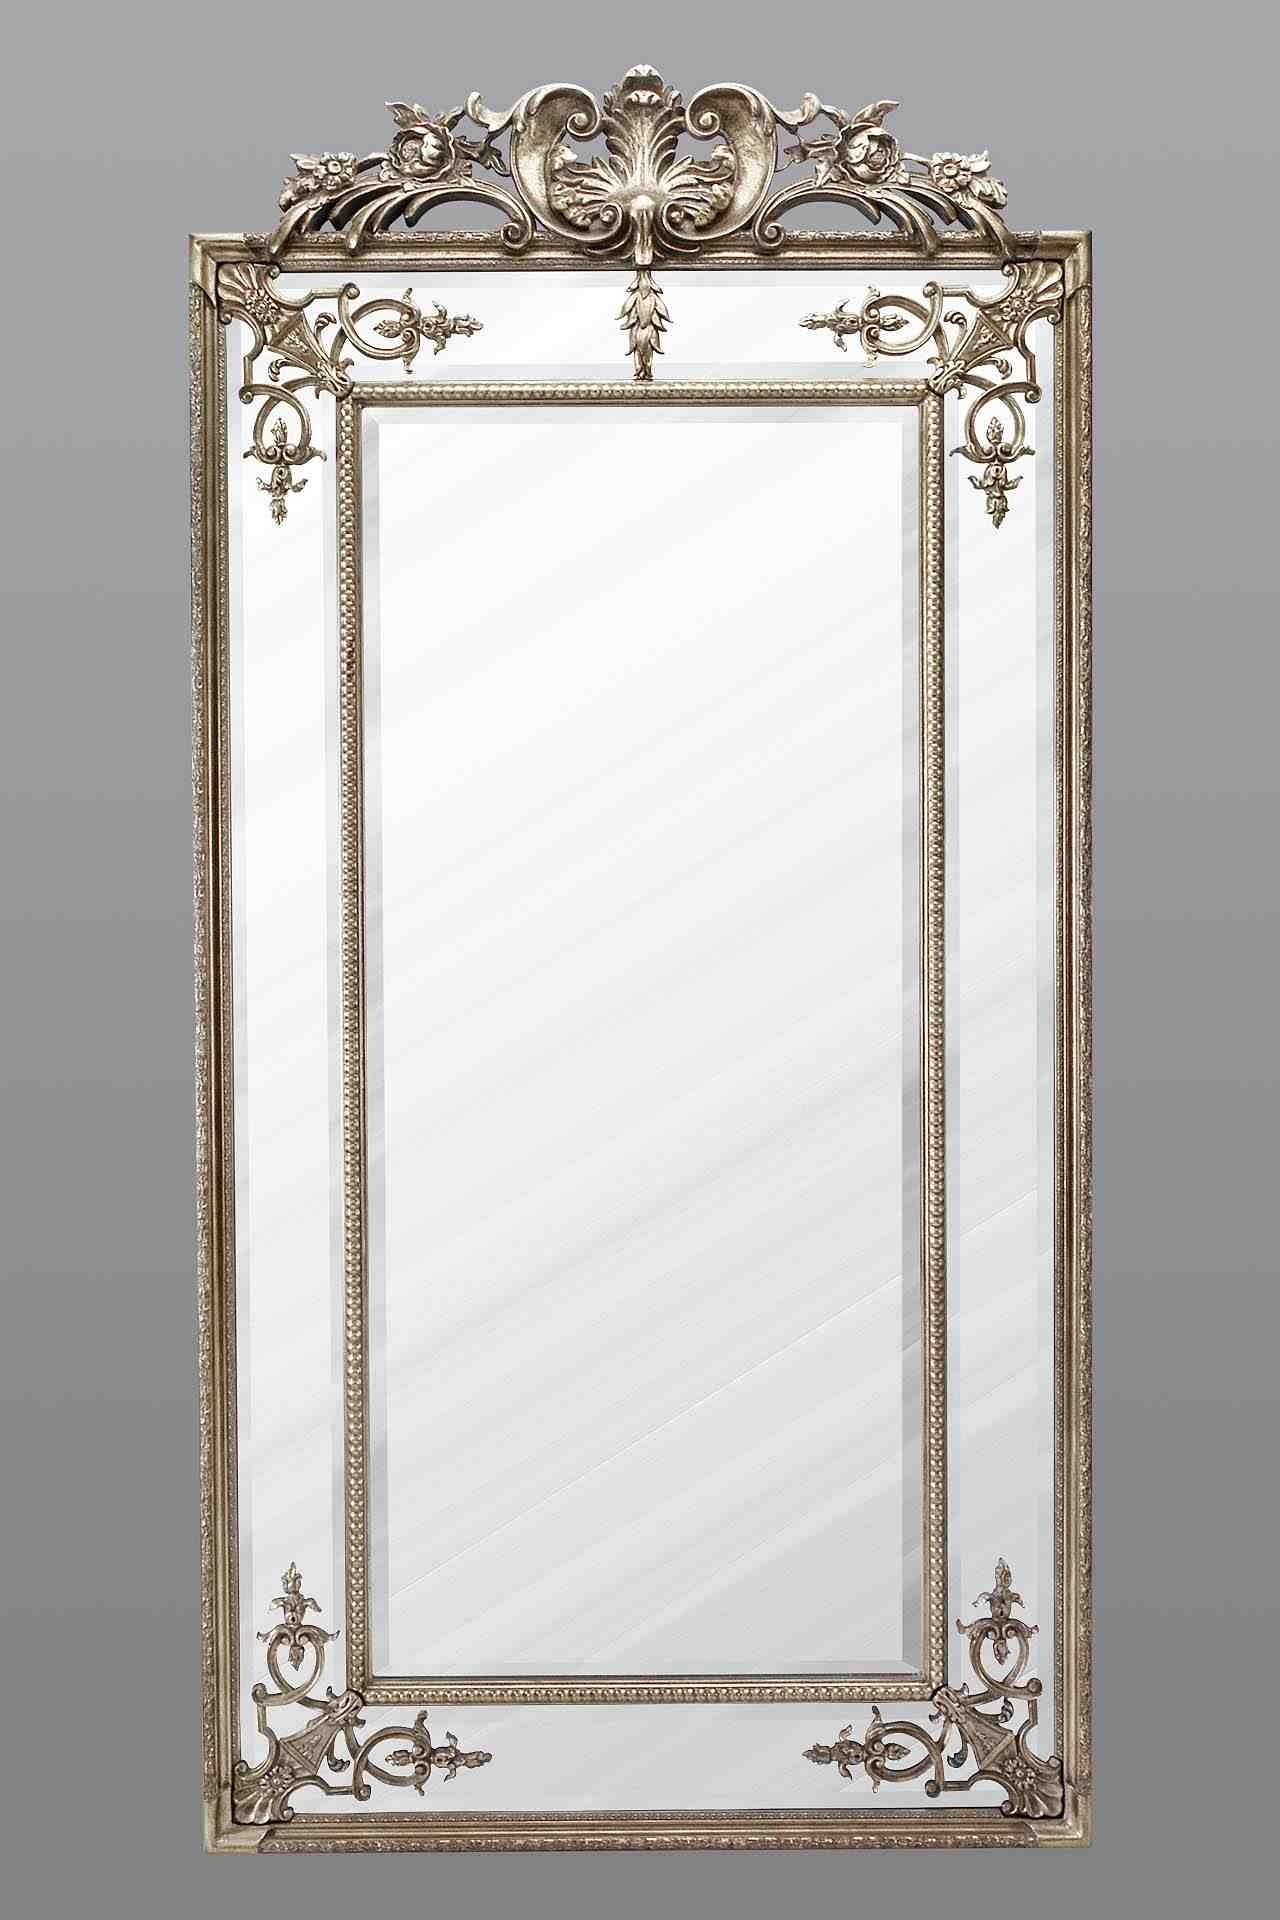 Full Length Silver Mirror 93 Breathtaking Decor Plus Full Length Throughout Silver Full Length Mirror (Image 7 of 15)